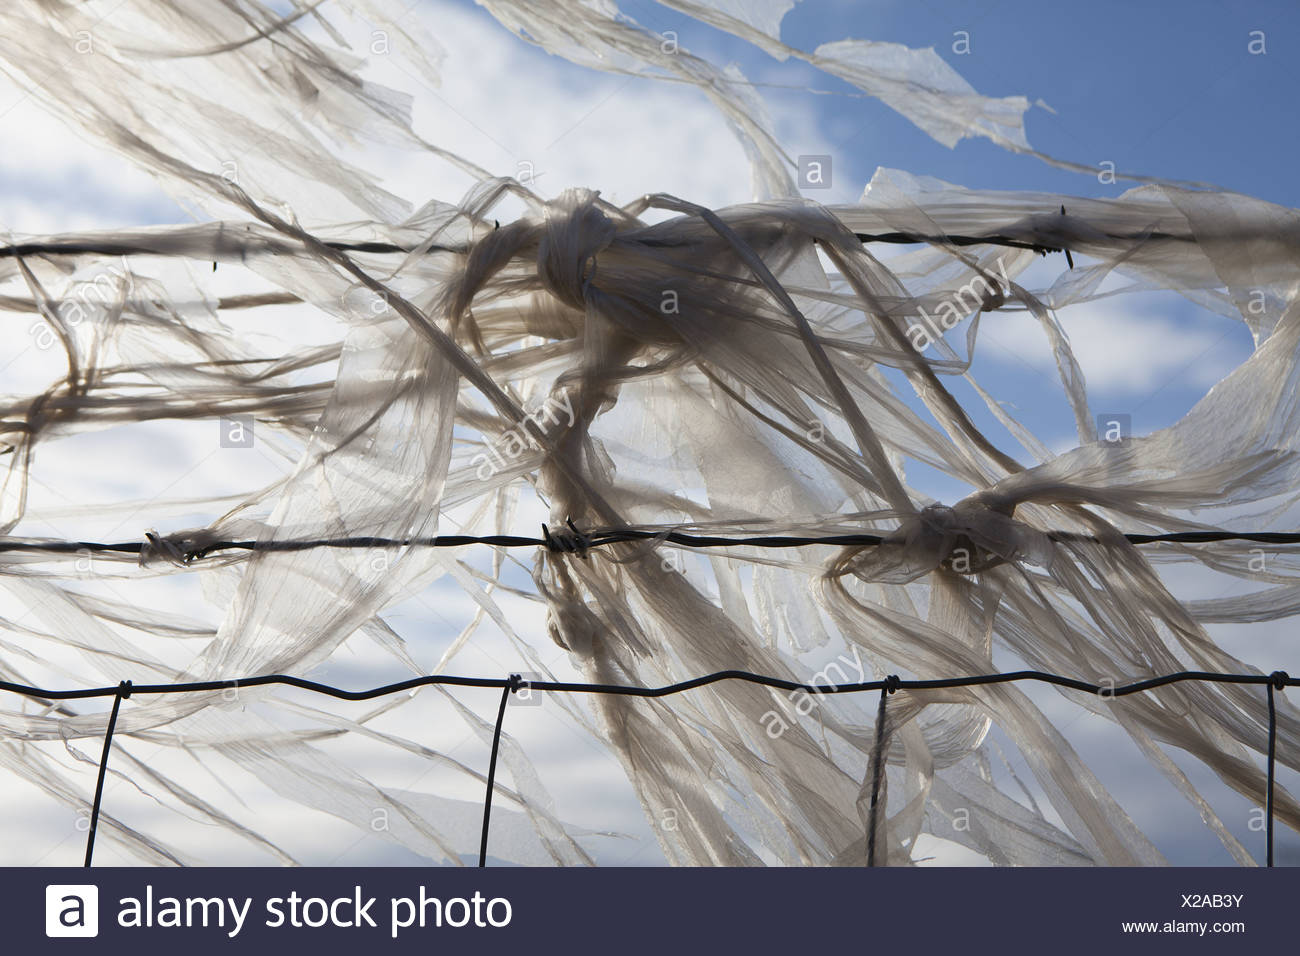 Seattle Washington USA Plastic bags caught on barbed wire fence - Stock Image